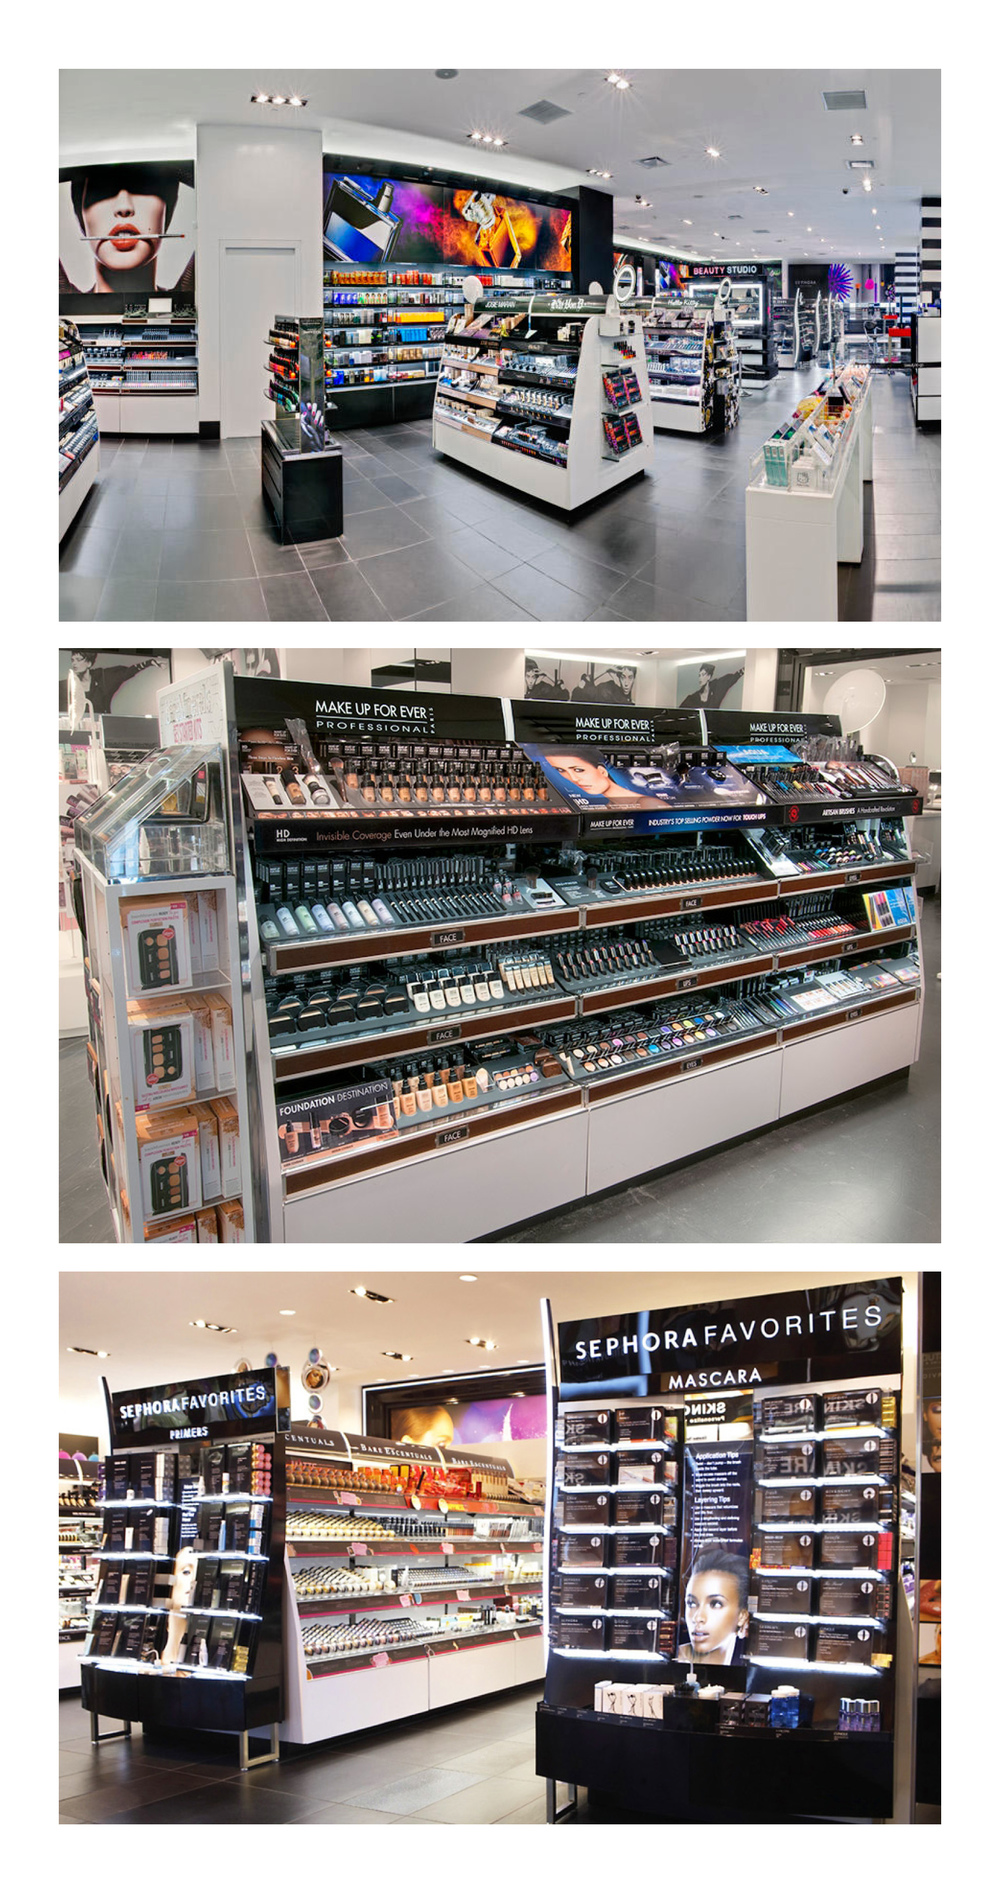 Graphics for Sephora